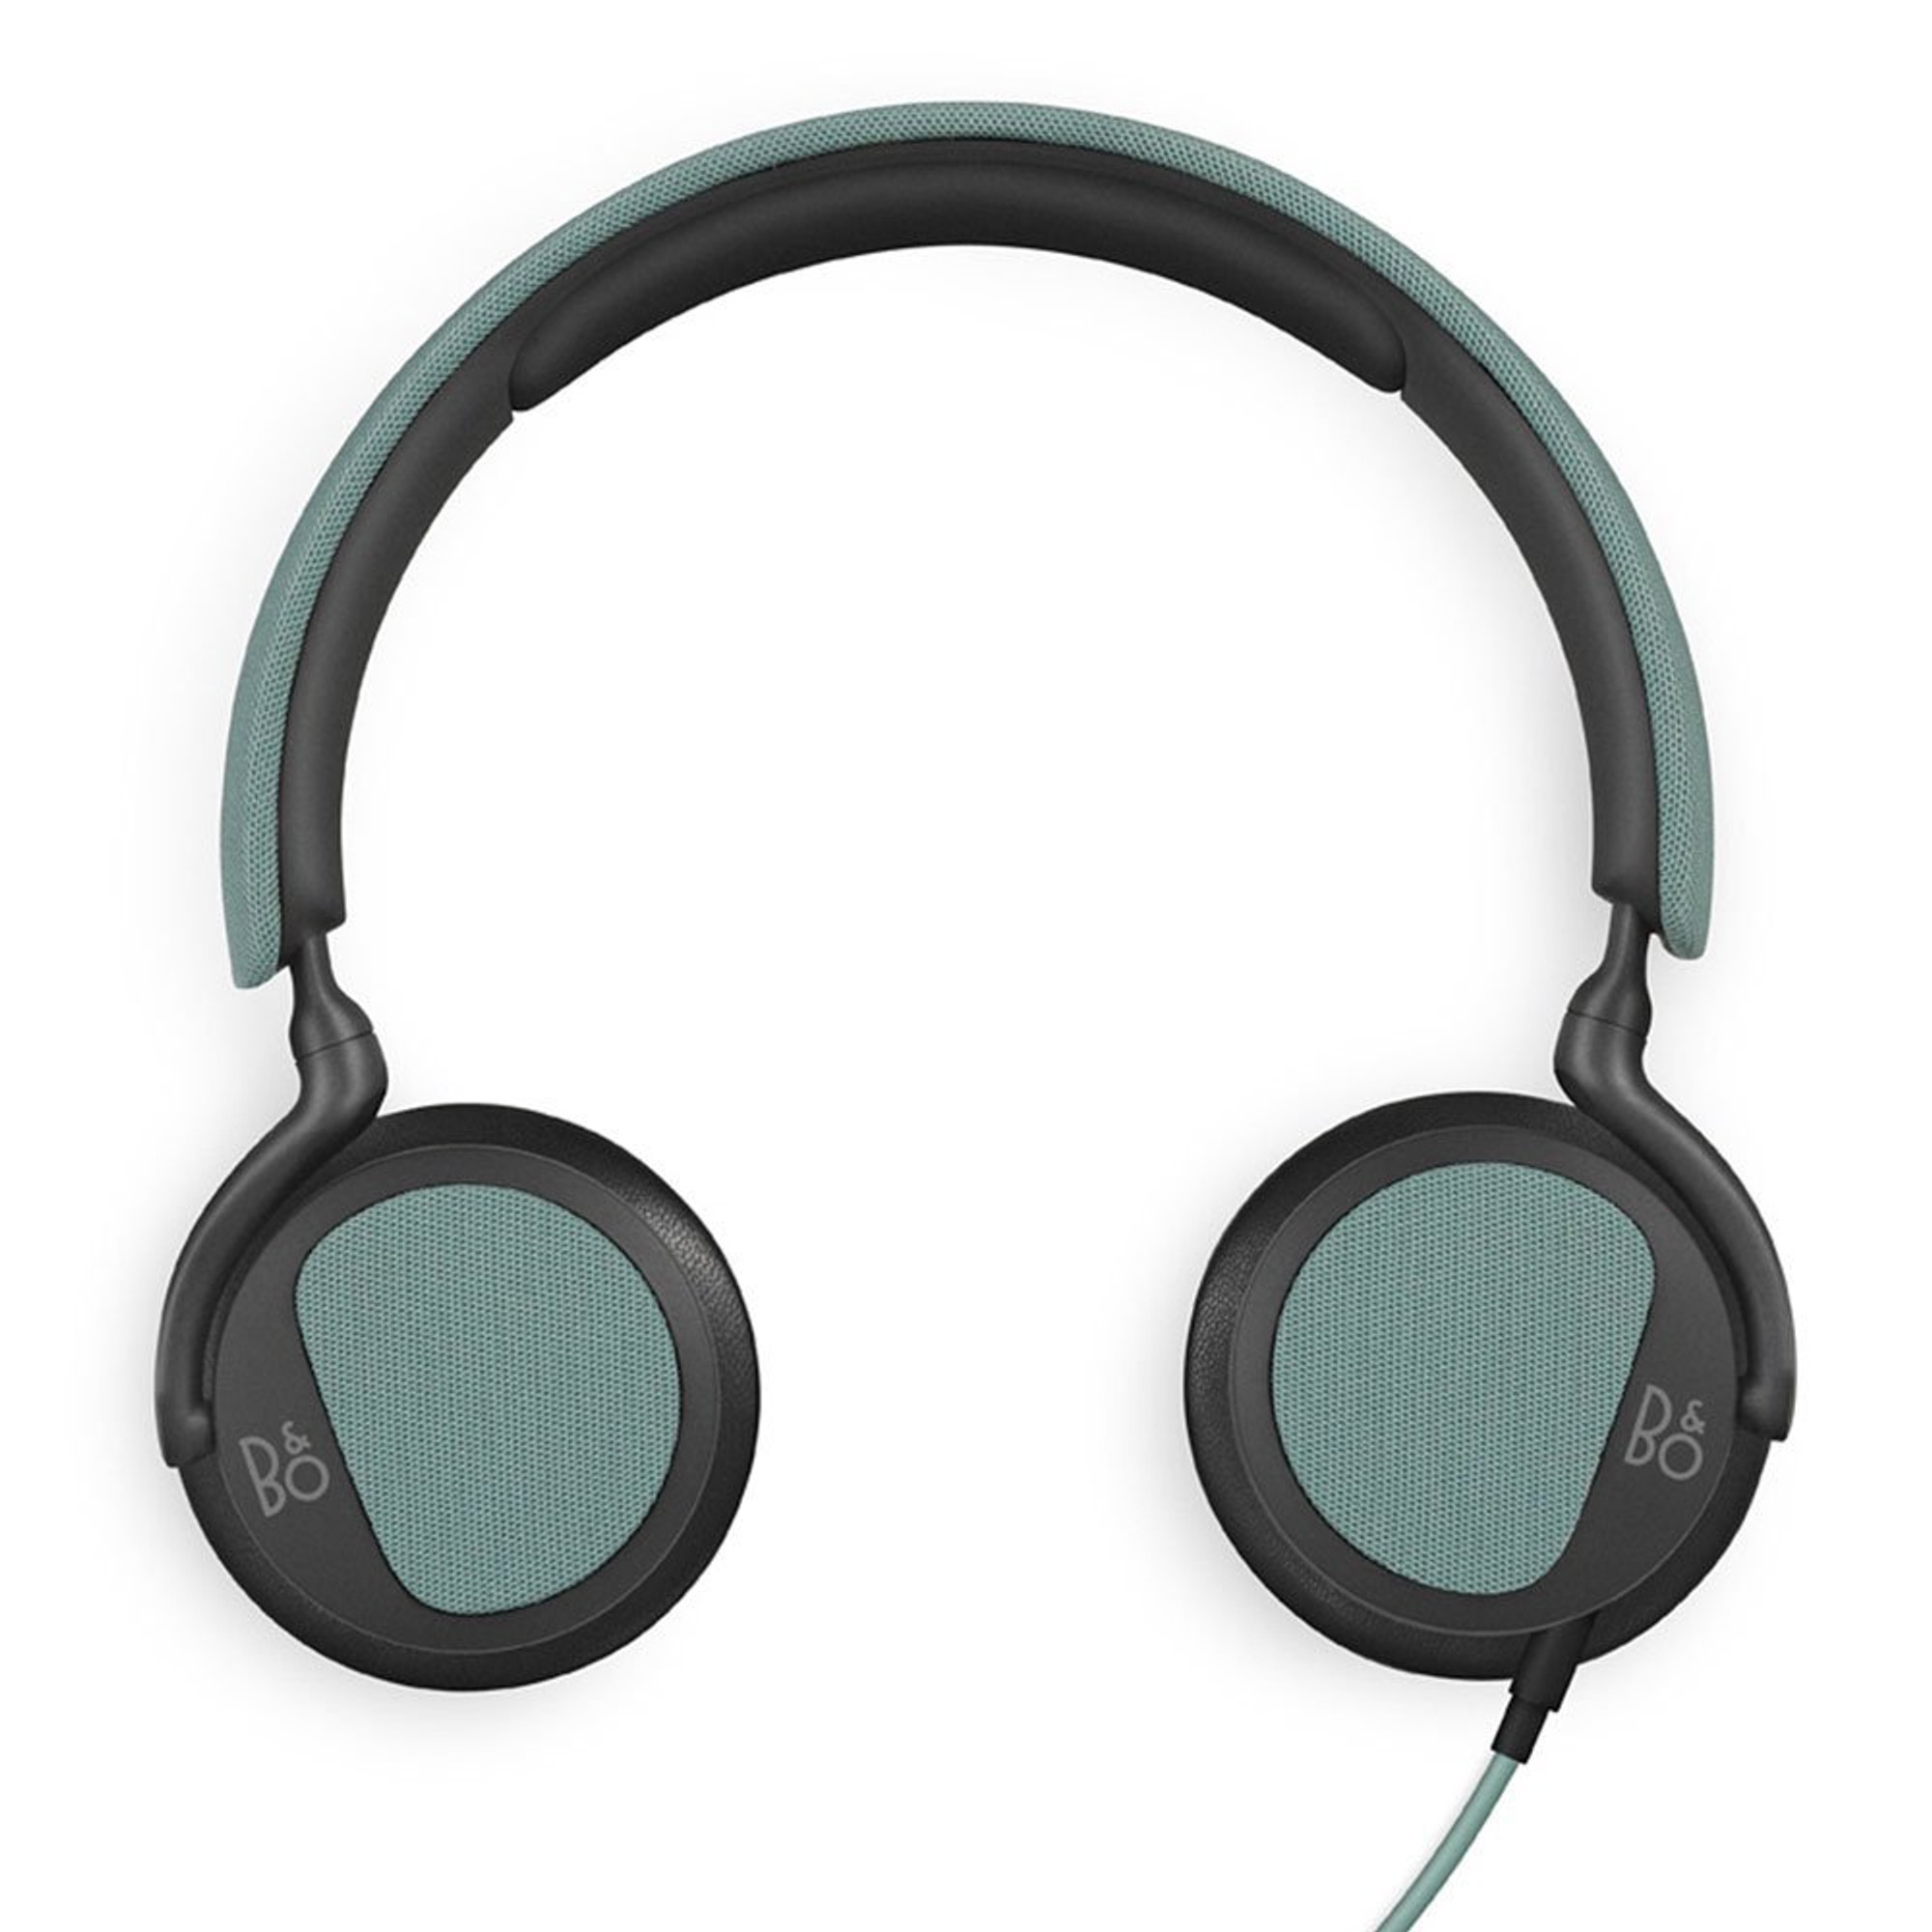 Bang & Olufsen BeoPlay H8 review: A swanky Bluetooth headphone with a price to match - CNET